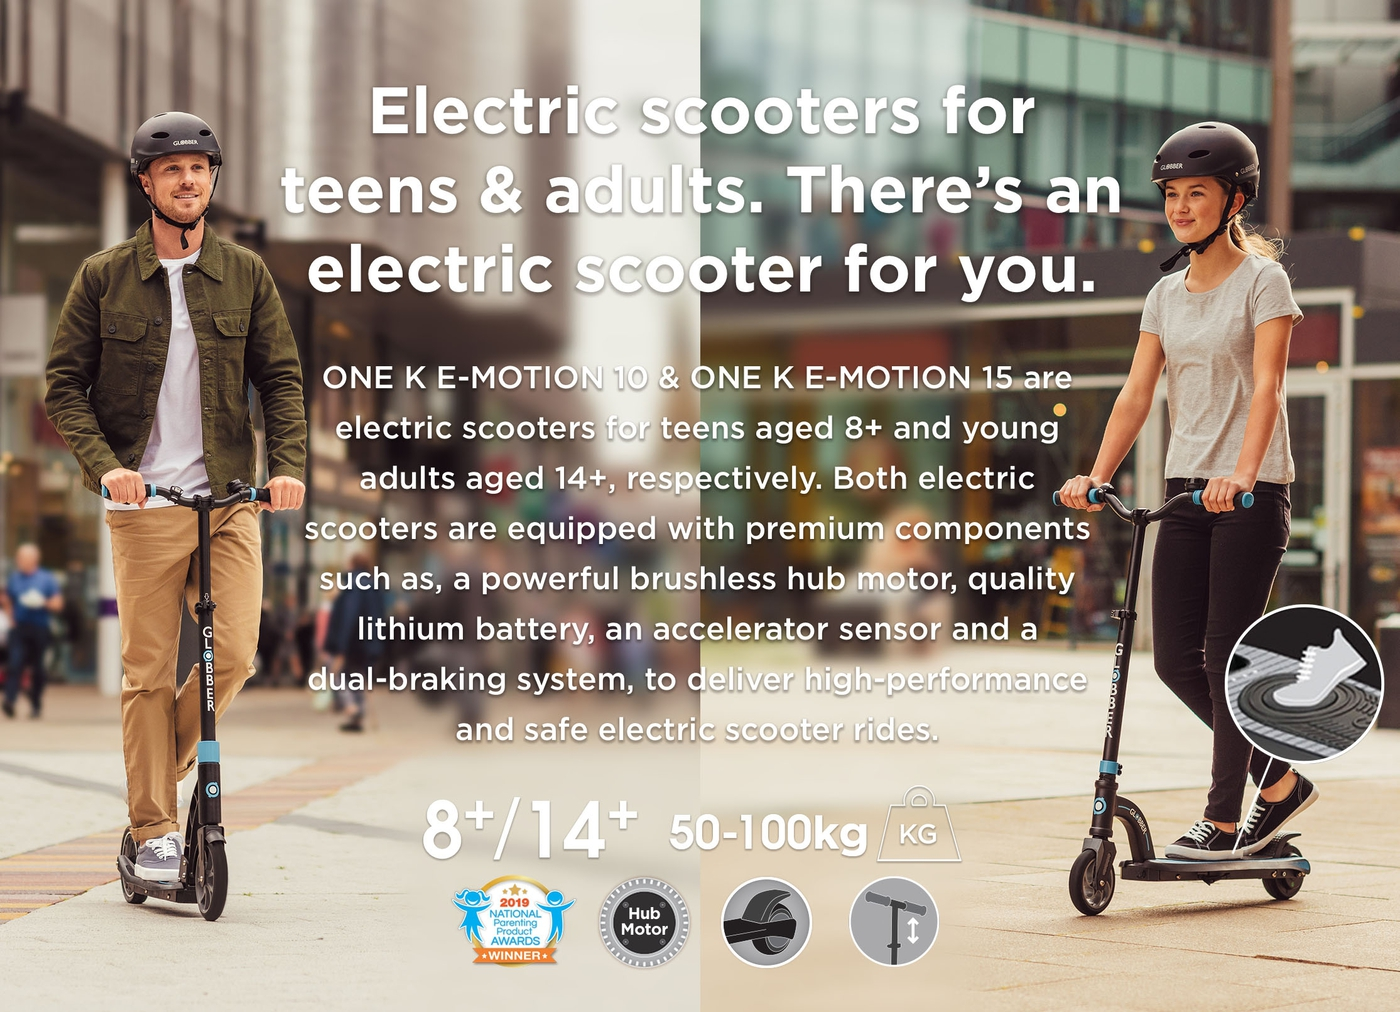 Electric scooters for kids, teens and young adults